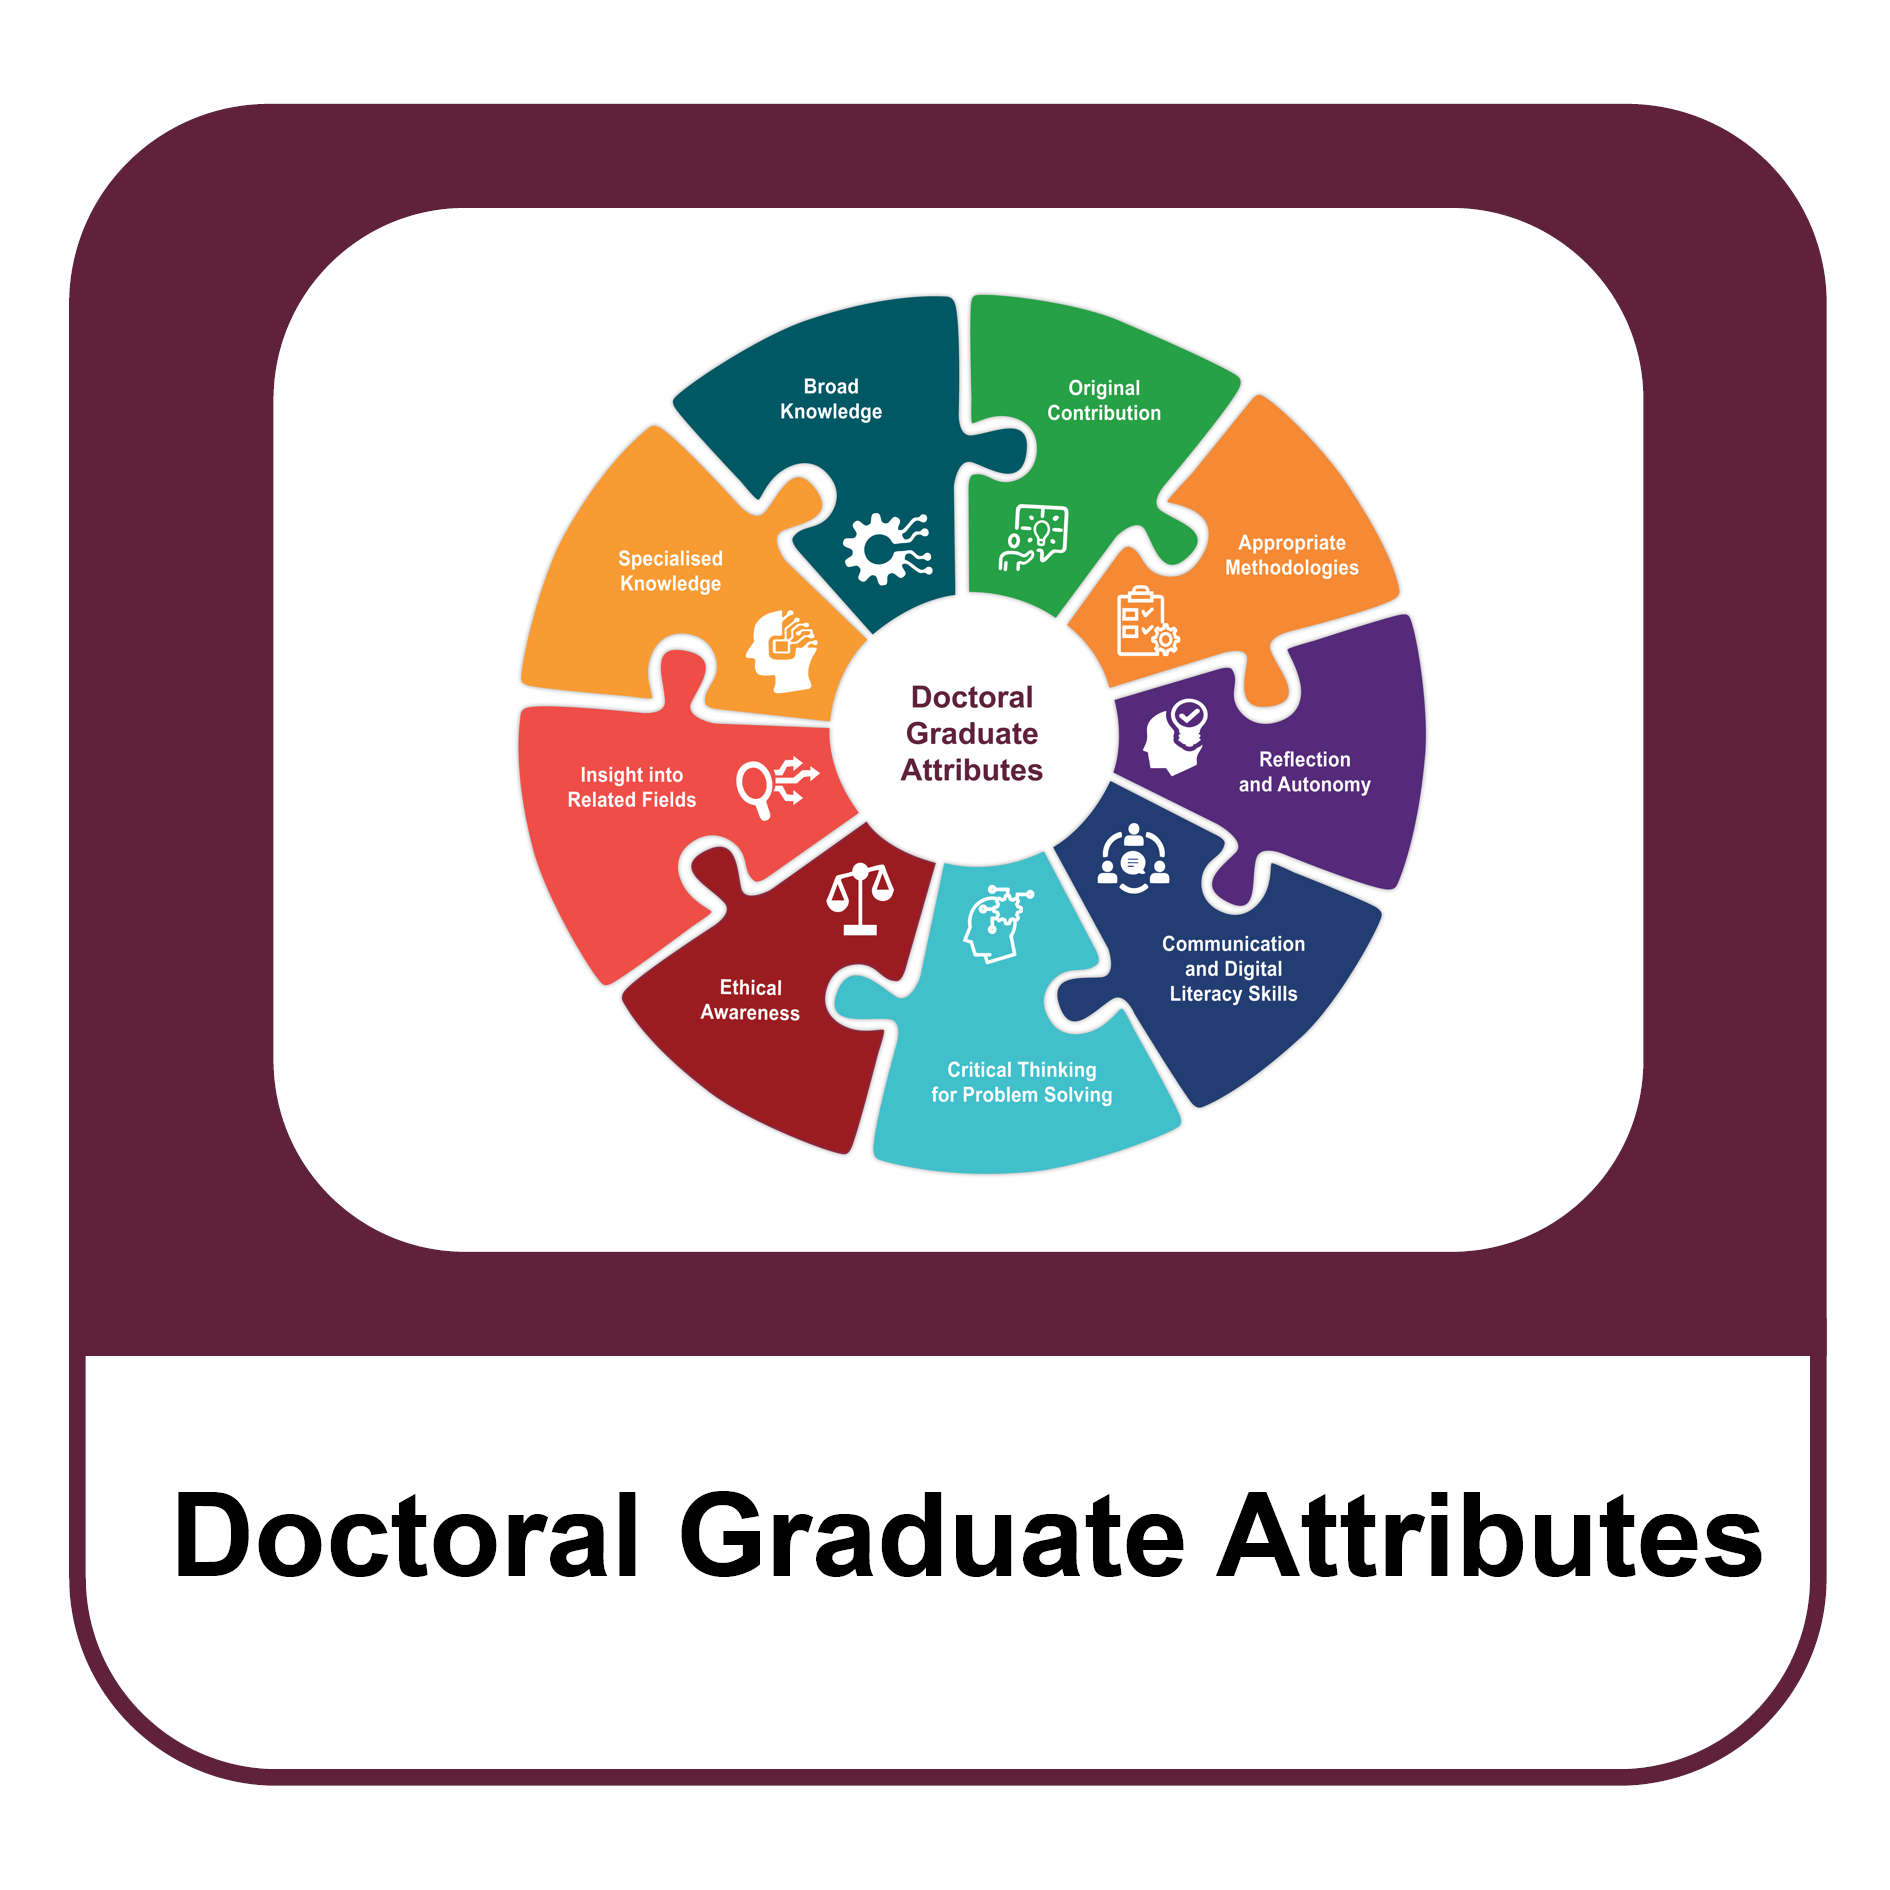 Doctoral graduate attributes icon resources.png